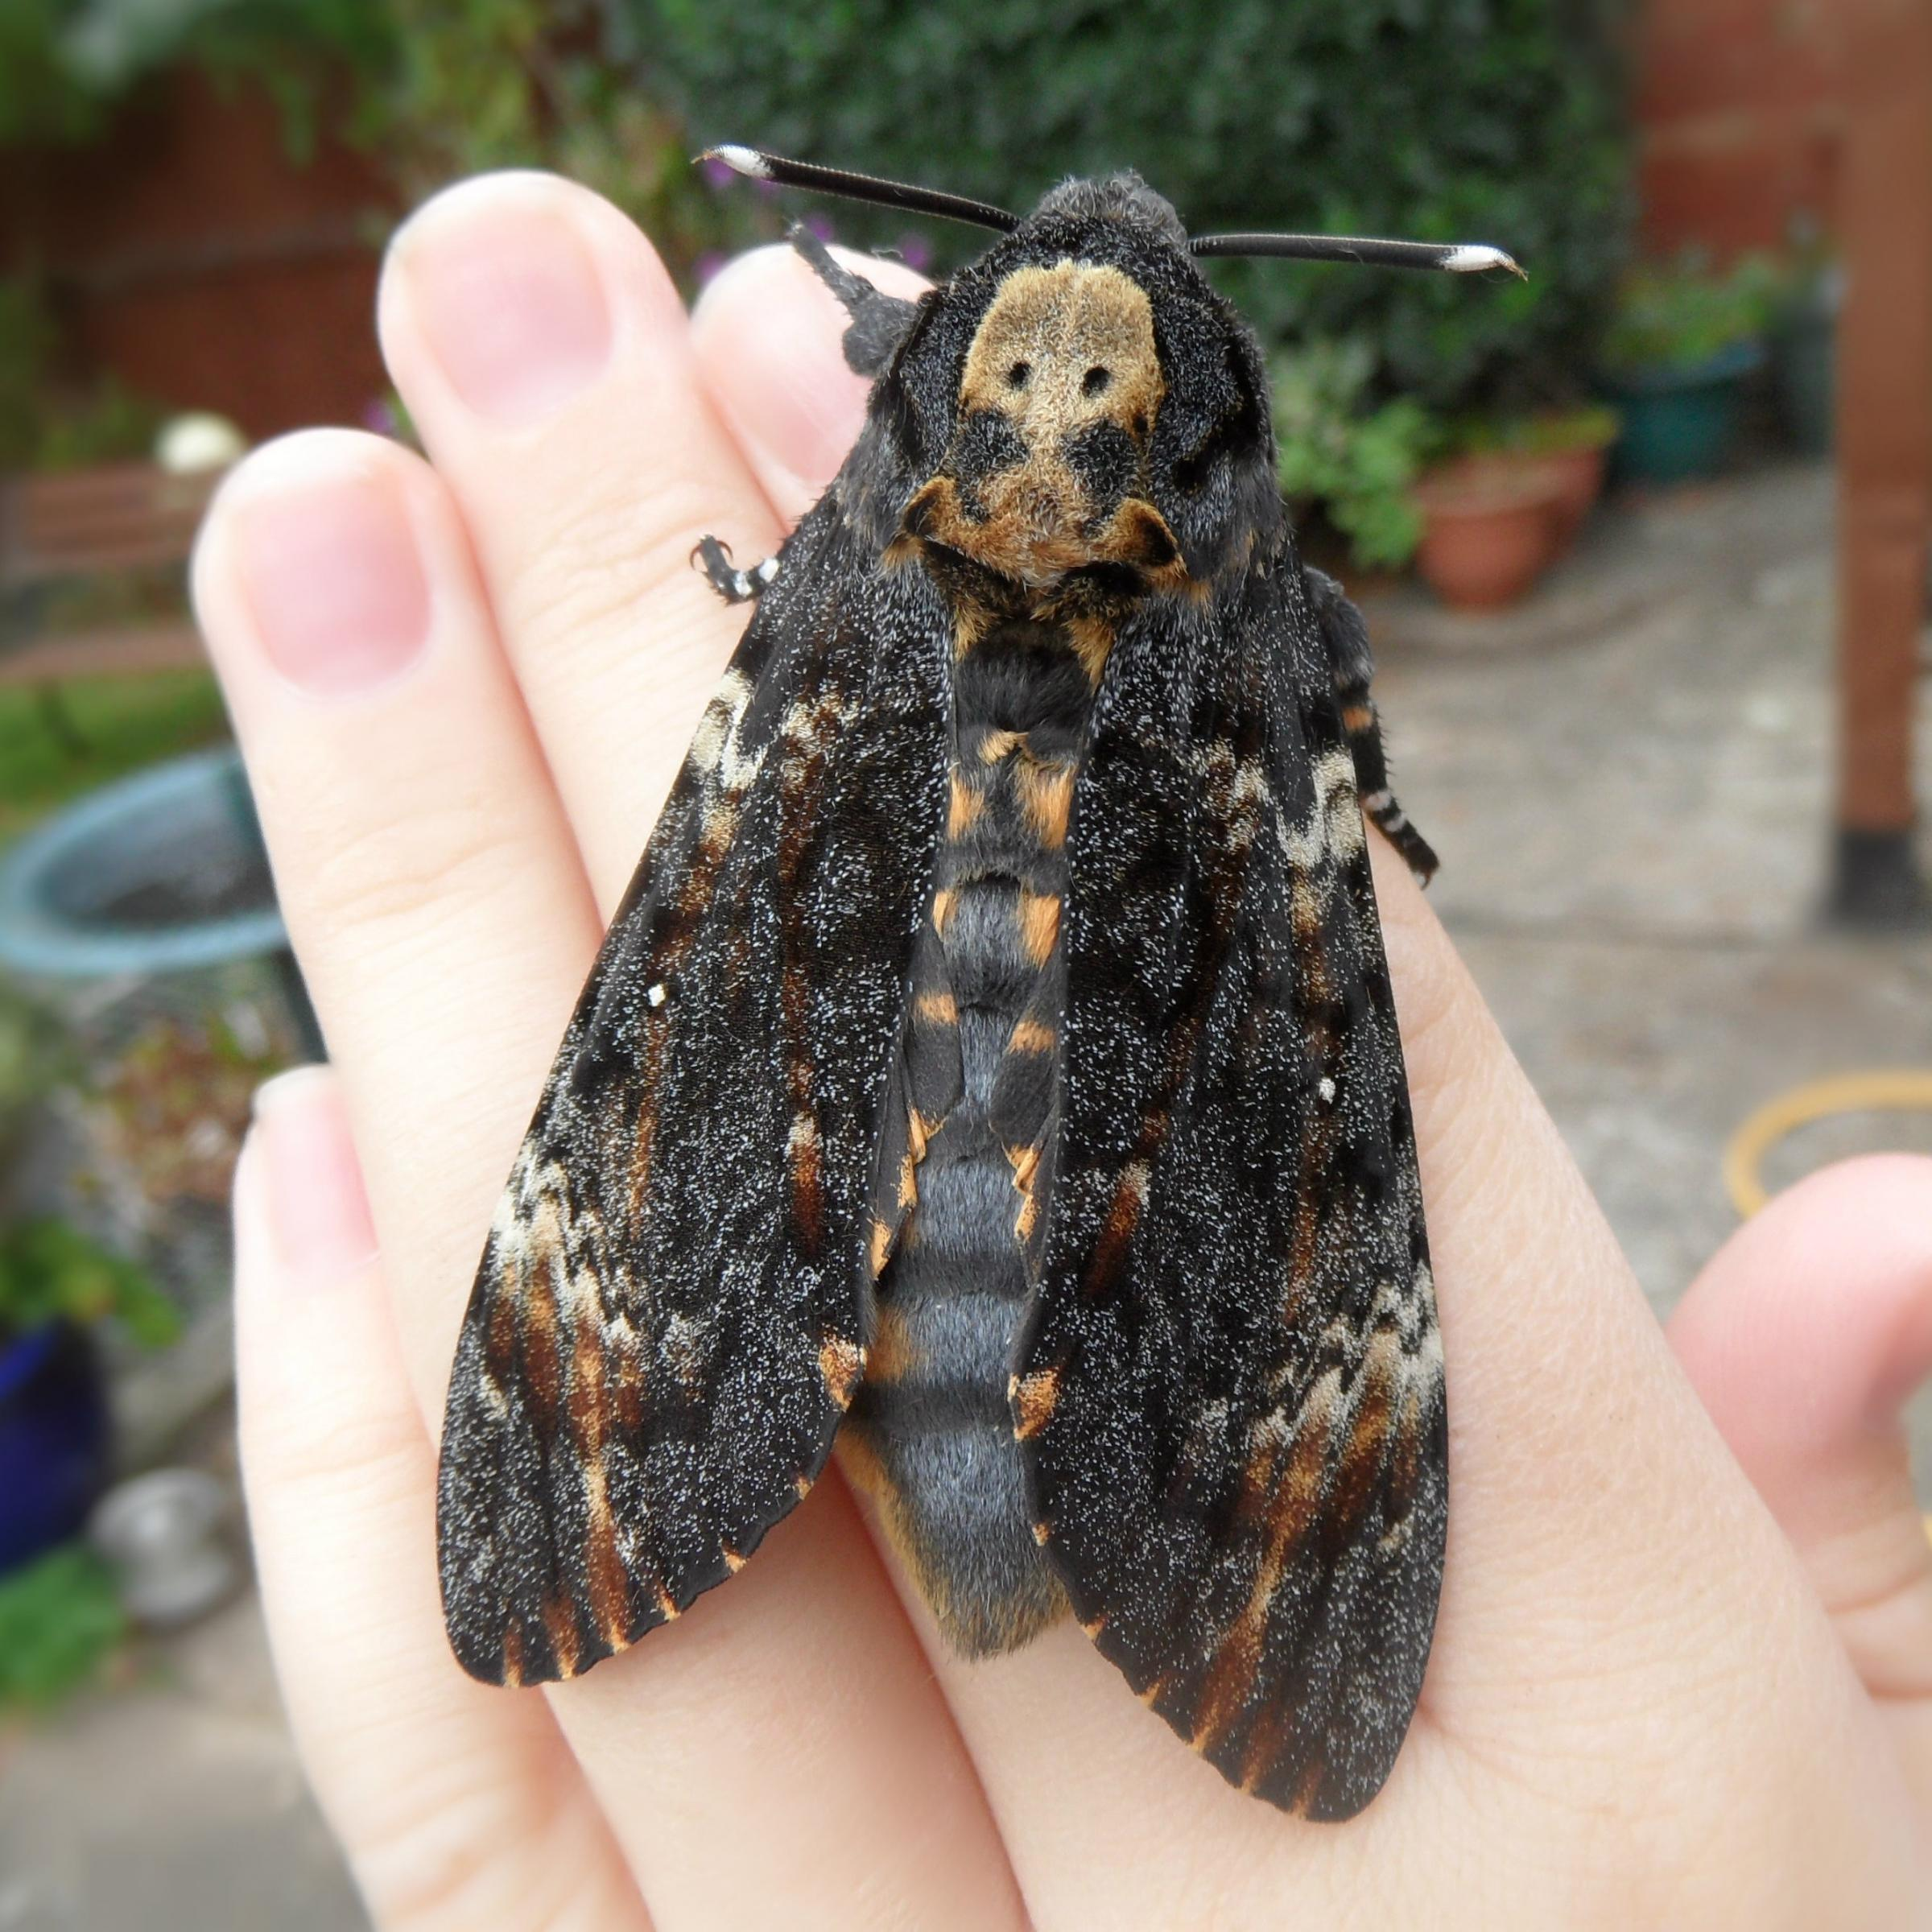 Giant grim reaper moths the size of bats are invading Britain